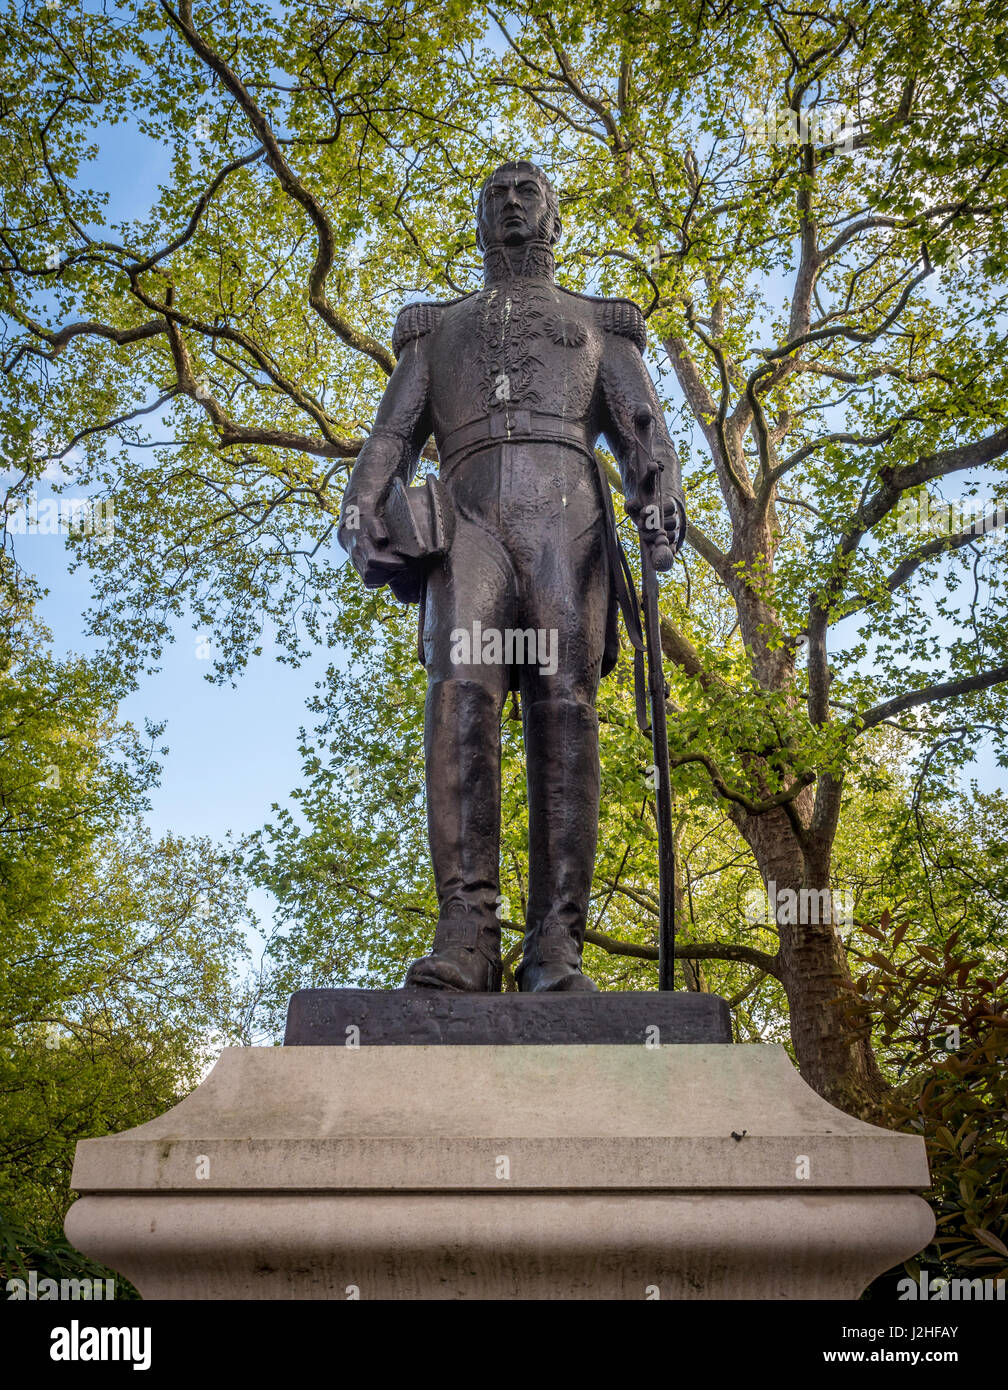 Statue of Don Jose de San Martin in Belgrave Square, London. Sculptor:  (Argentina). - Stock Image